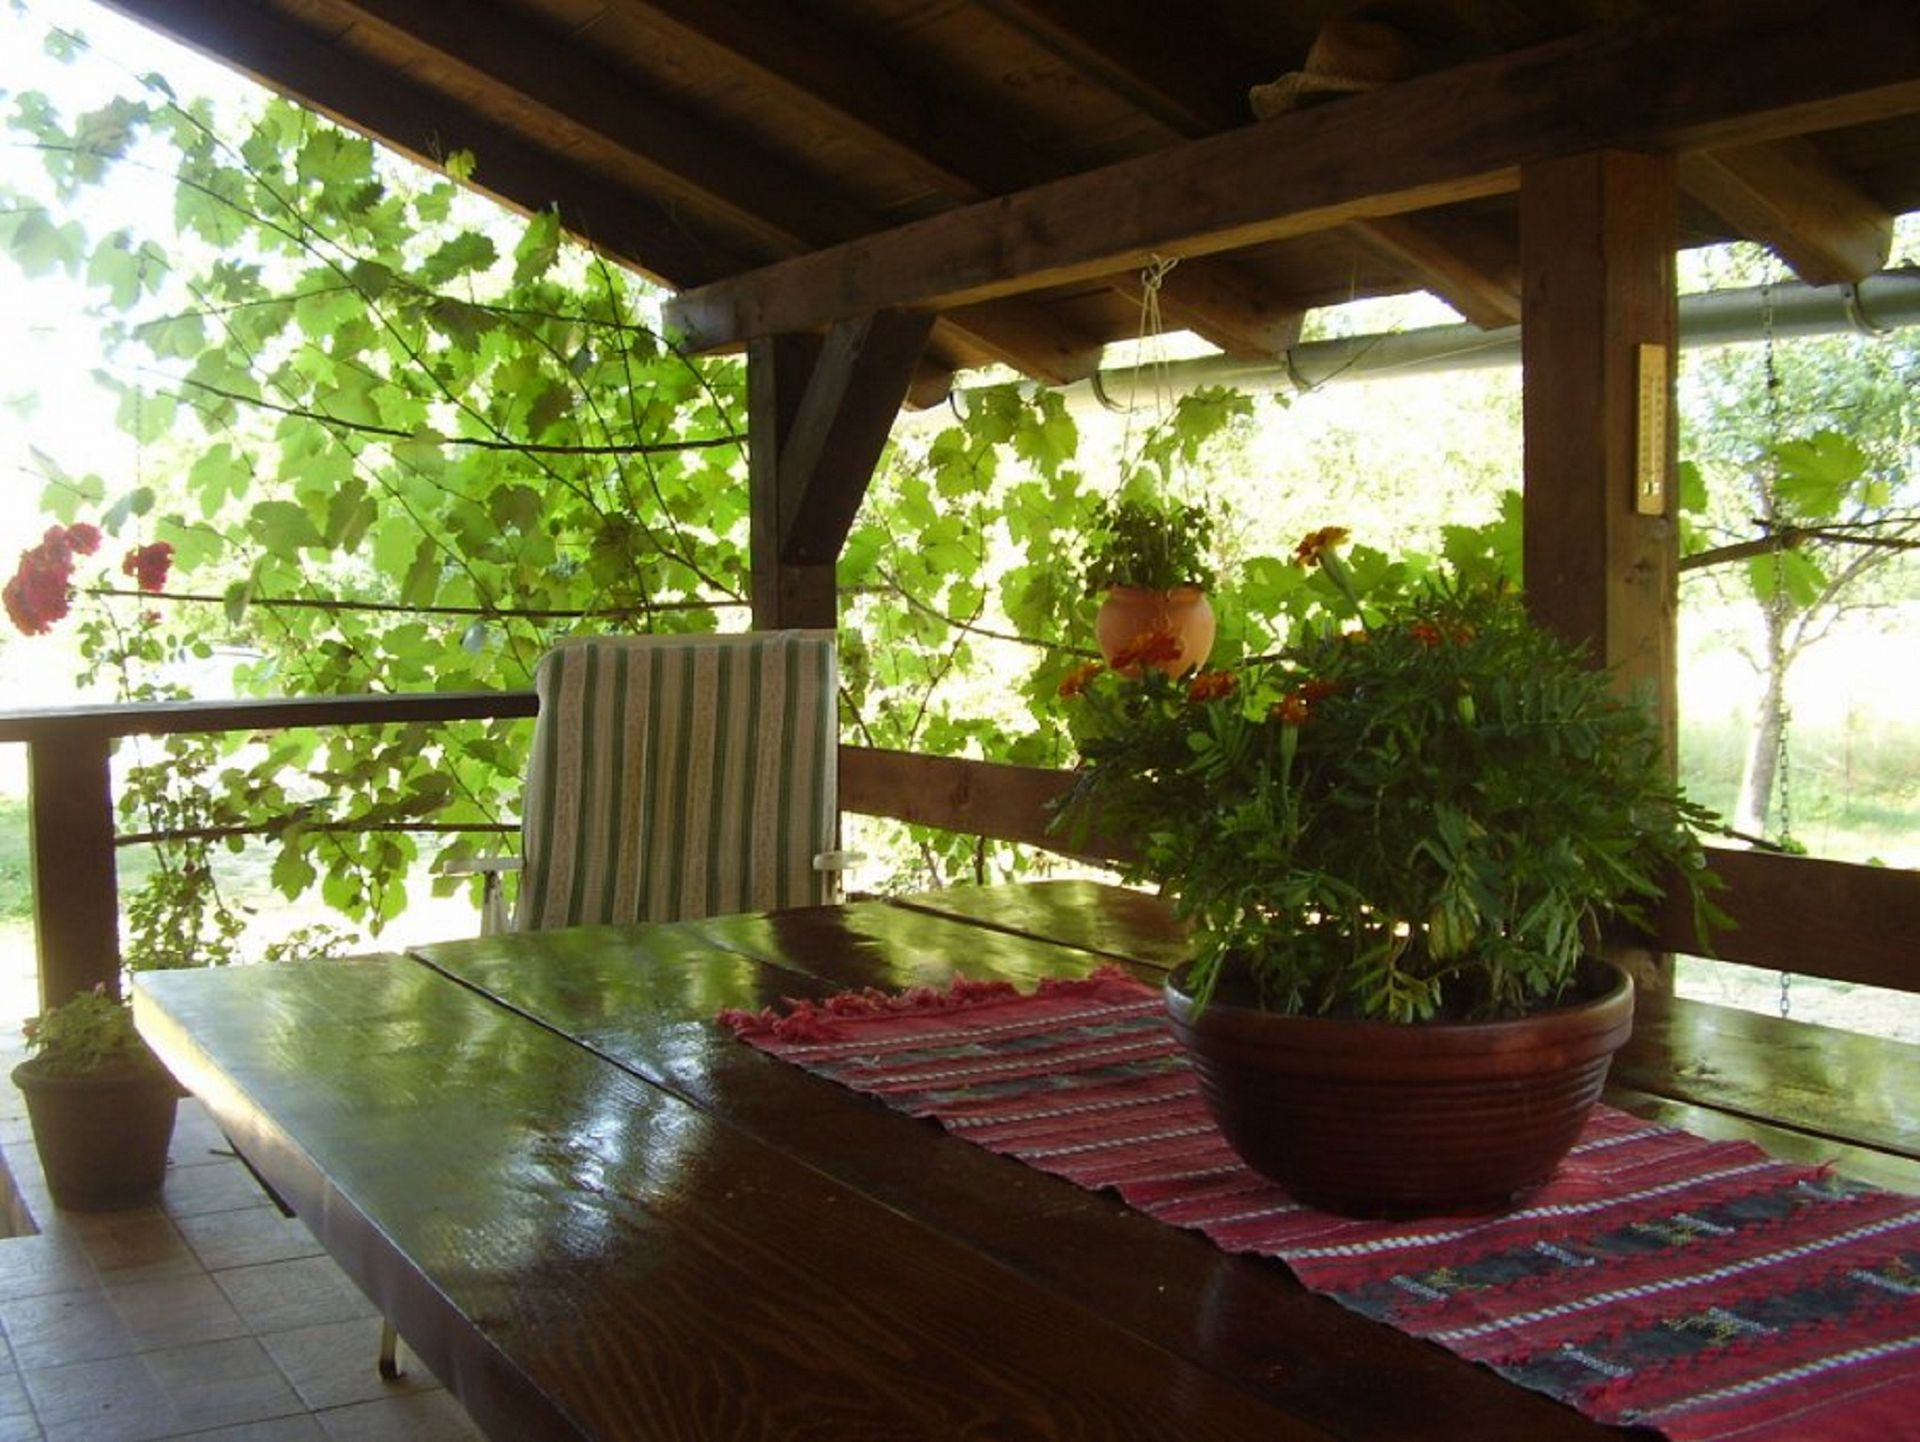 Biserka - Gacka dolina - Holiday houses, villas Croatia